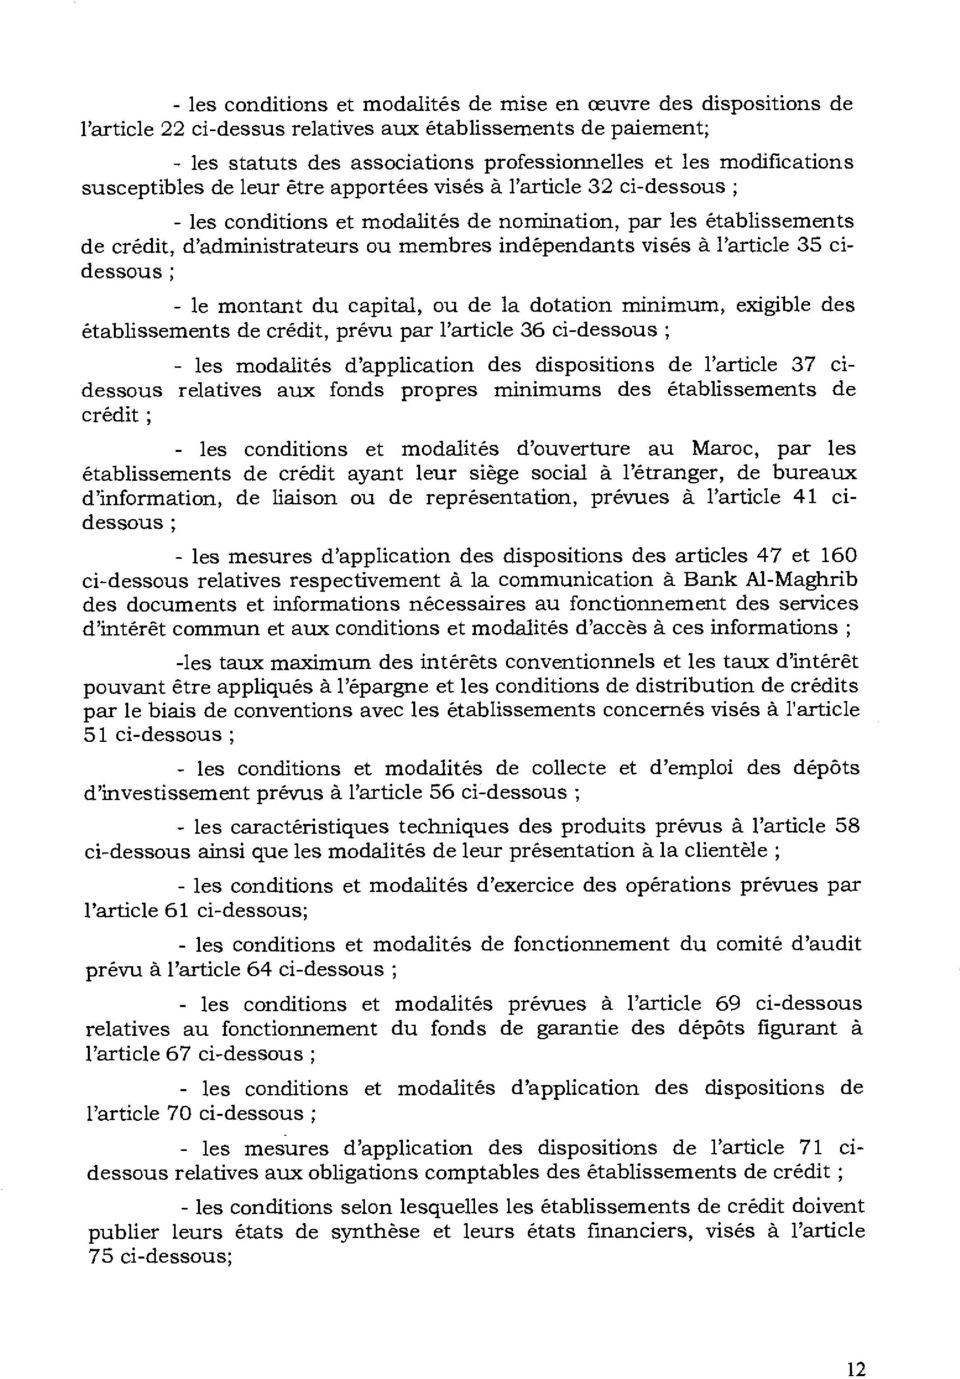 indépendants visés à l'article 35 cidessous ; - le montant du capital, ou de la dotation minimum, exigible des établissements de crédit, prévu par l'article 36 ci-dessous ; - les modalités